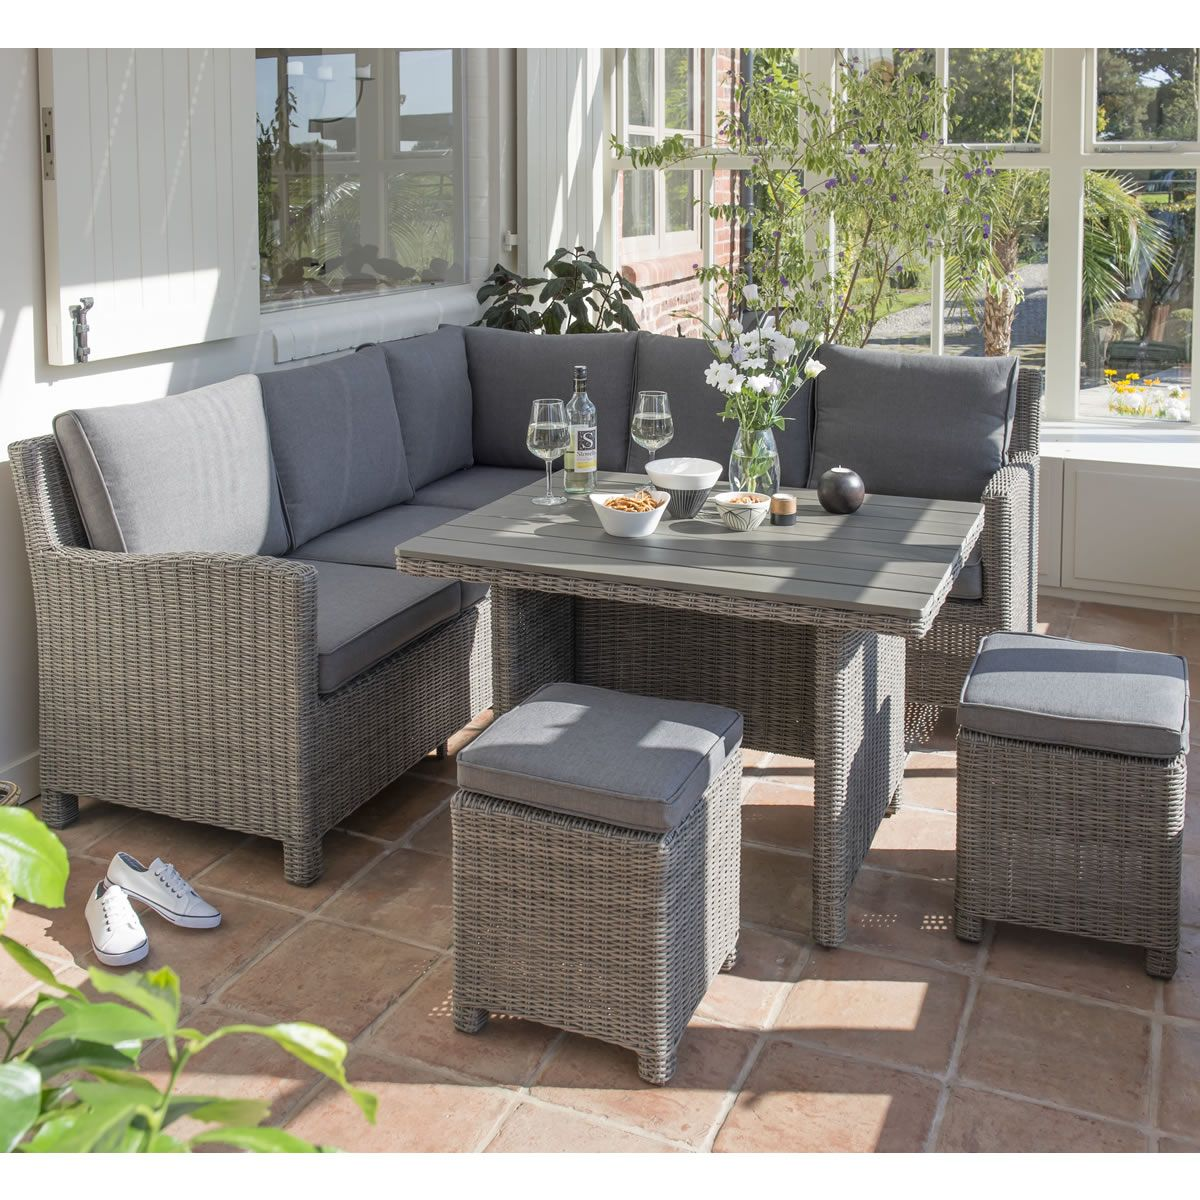 kettler palma mini corner set rattan with taupe cushions available to buy online from garden furniture world we sell a large range of garden furniture - Garden Furniture Kettler